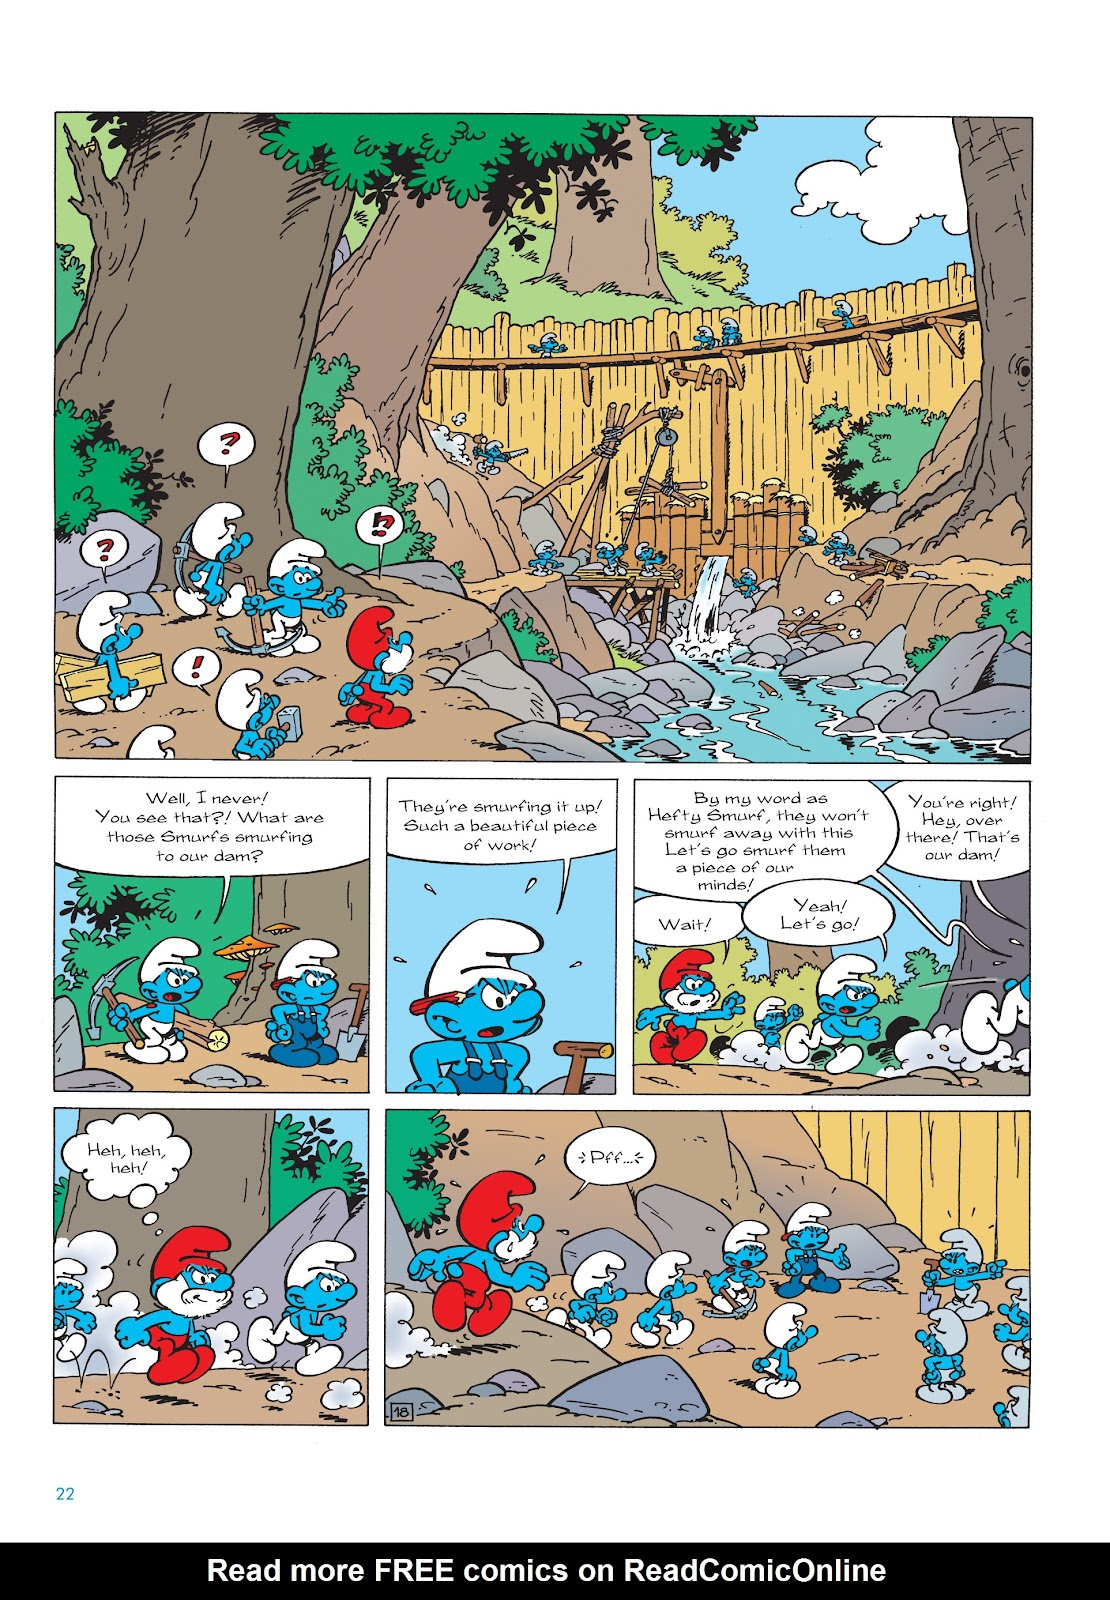 Read online The Smurfs comic -  Issue #22 - 23